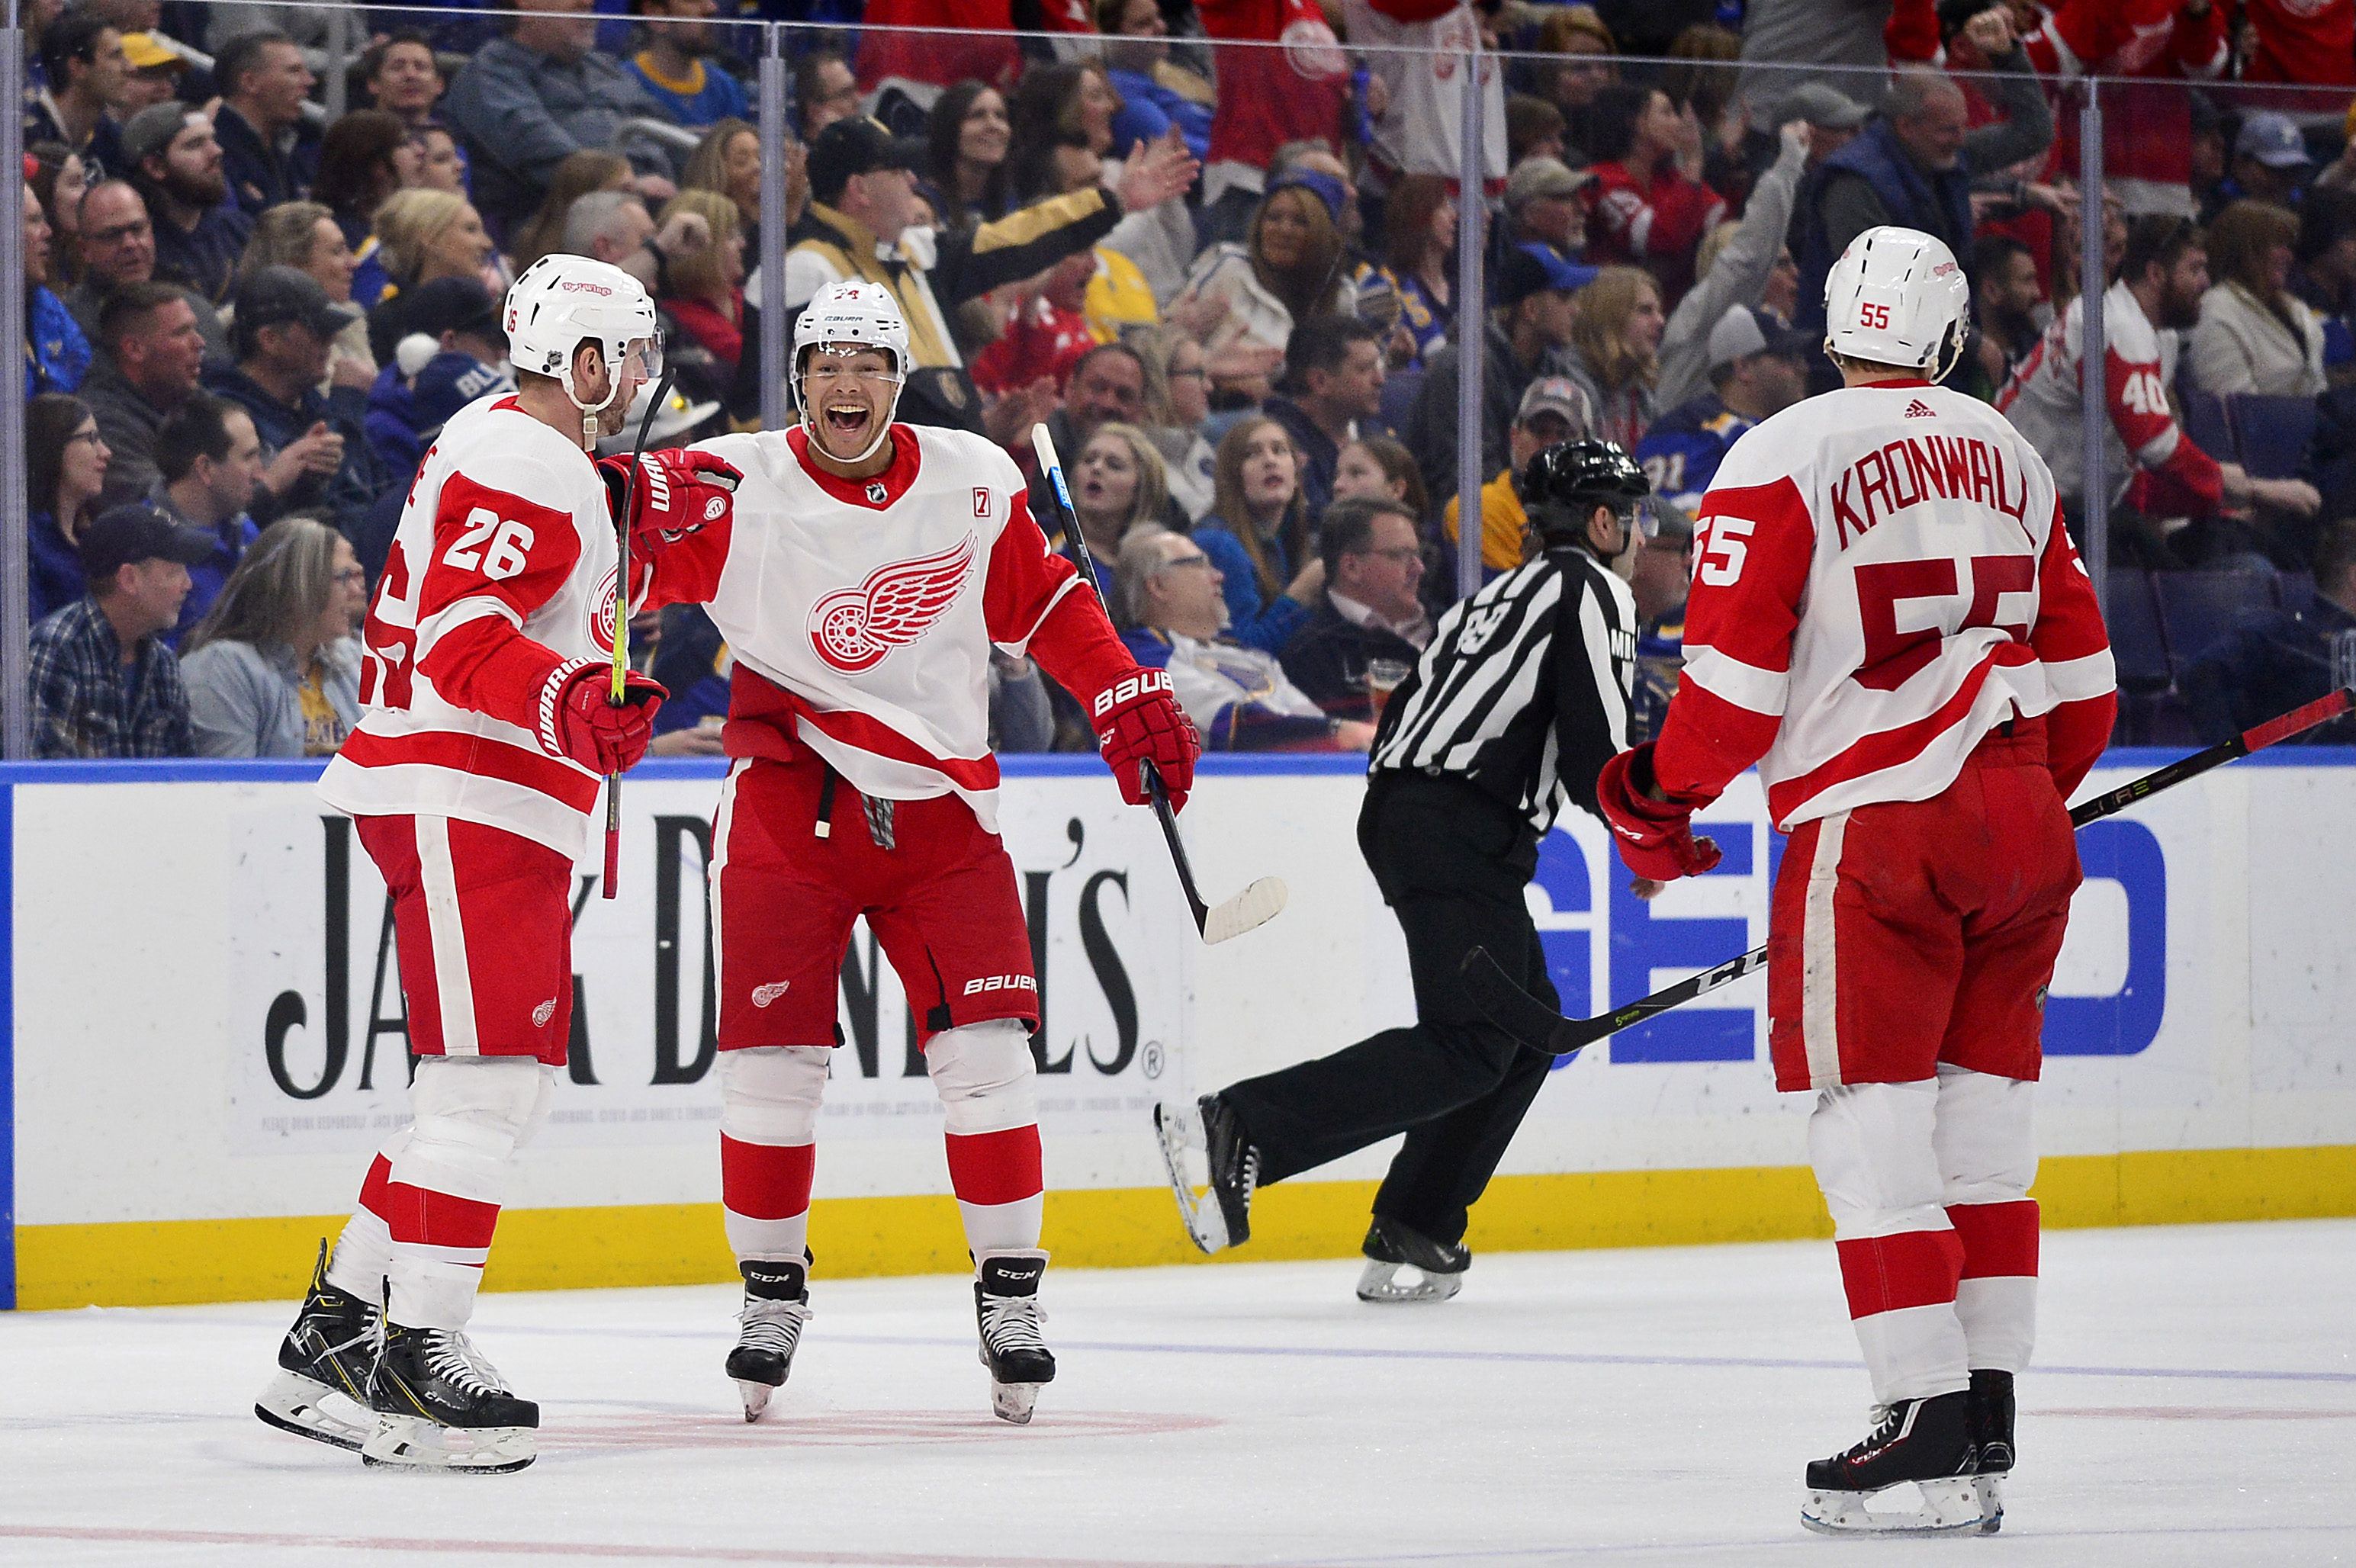 NHL: Detroit Red Wings at St. Louis Blues